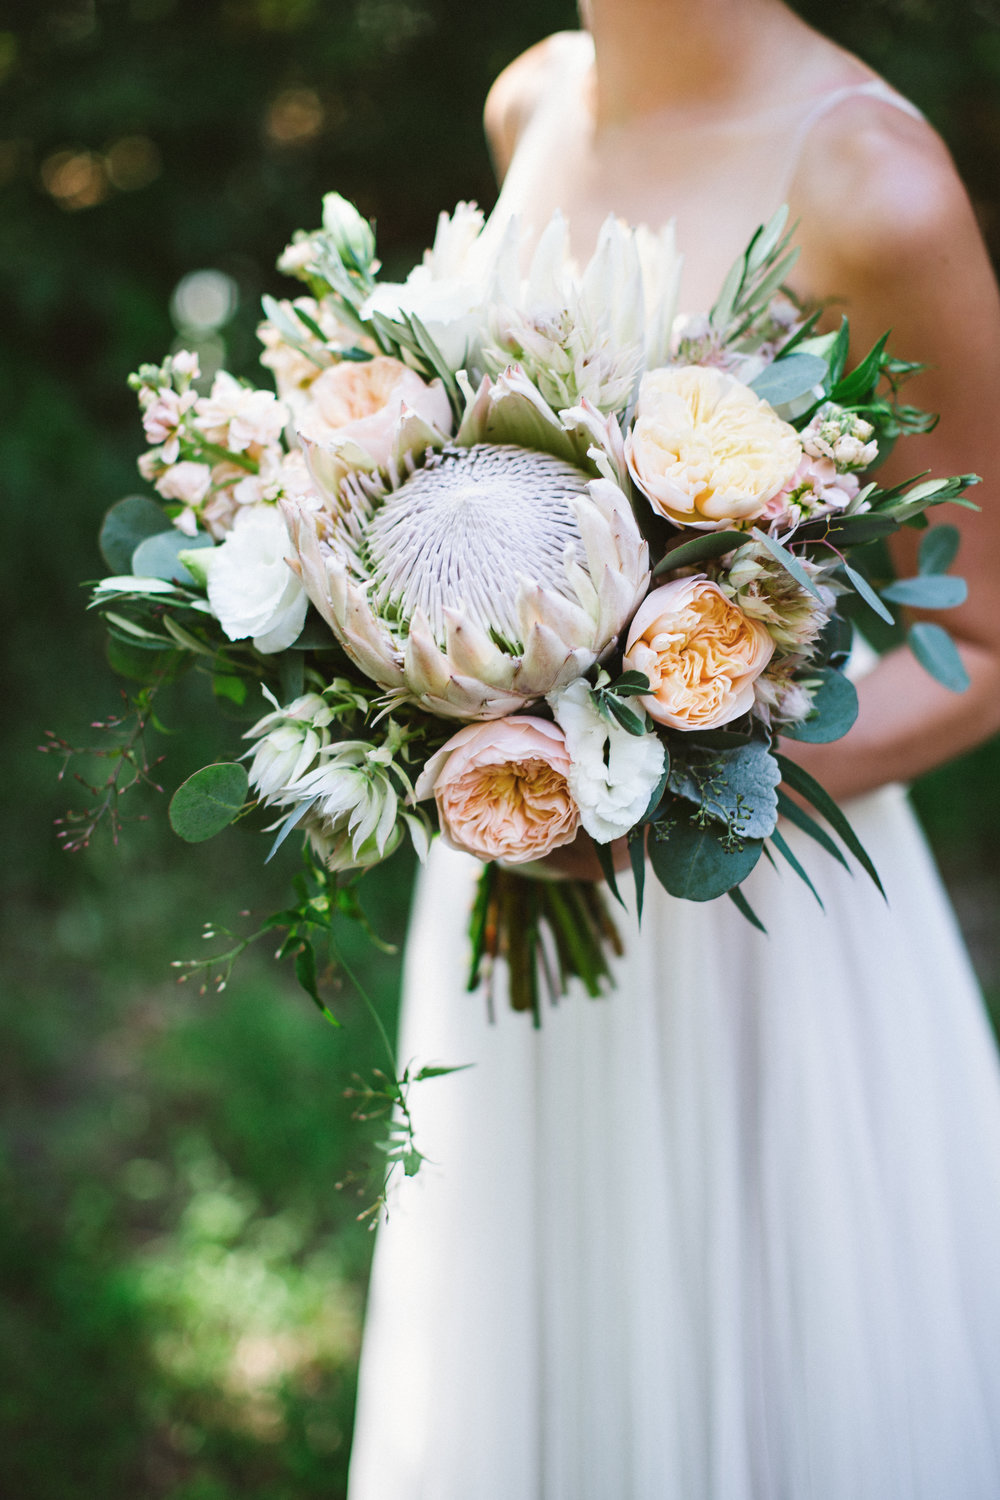 King and Blushing Bride Proteas, Juliet Garden Roses, Lisianthus, Stock, Jasmine Vine.  Photo by Jennifer Crook Photography.